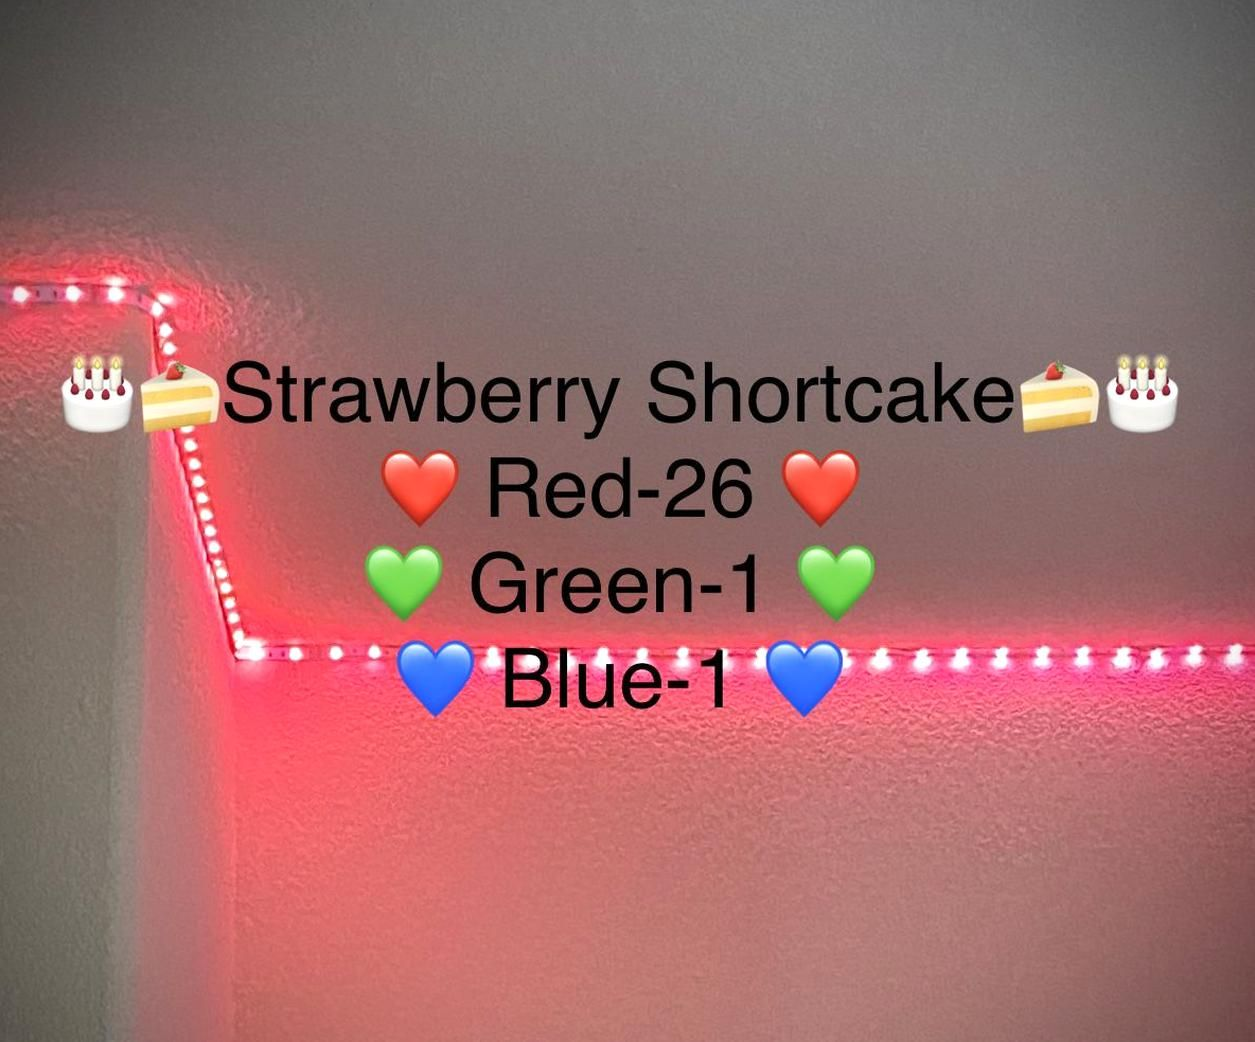 Heres how to make strawberry shortcake on your LED lights